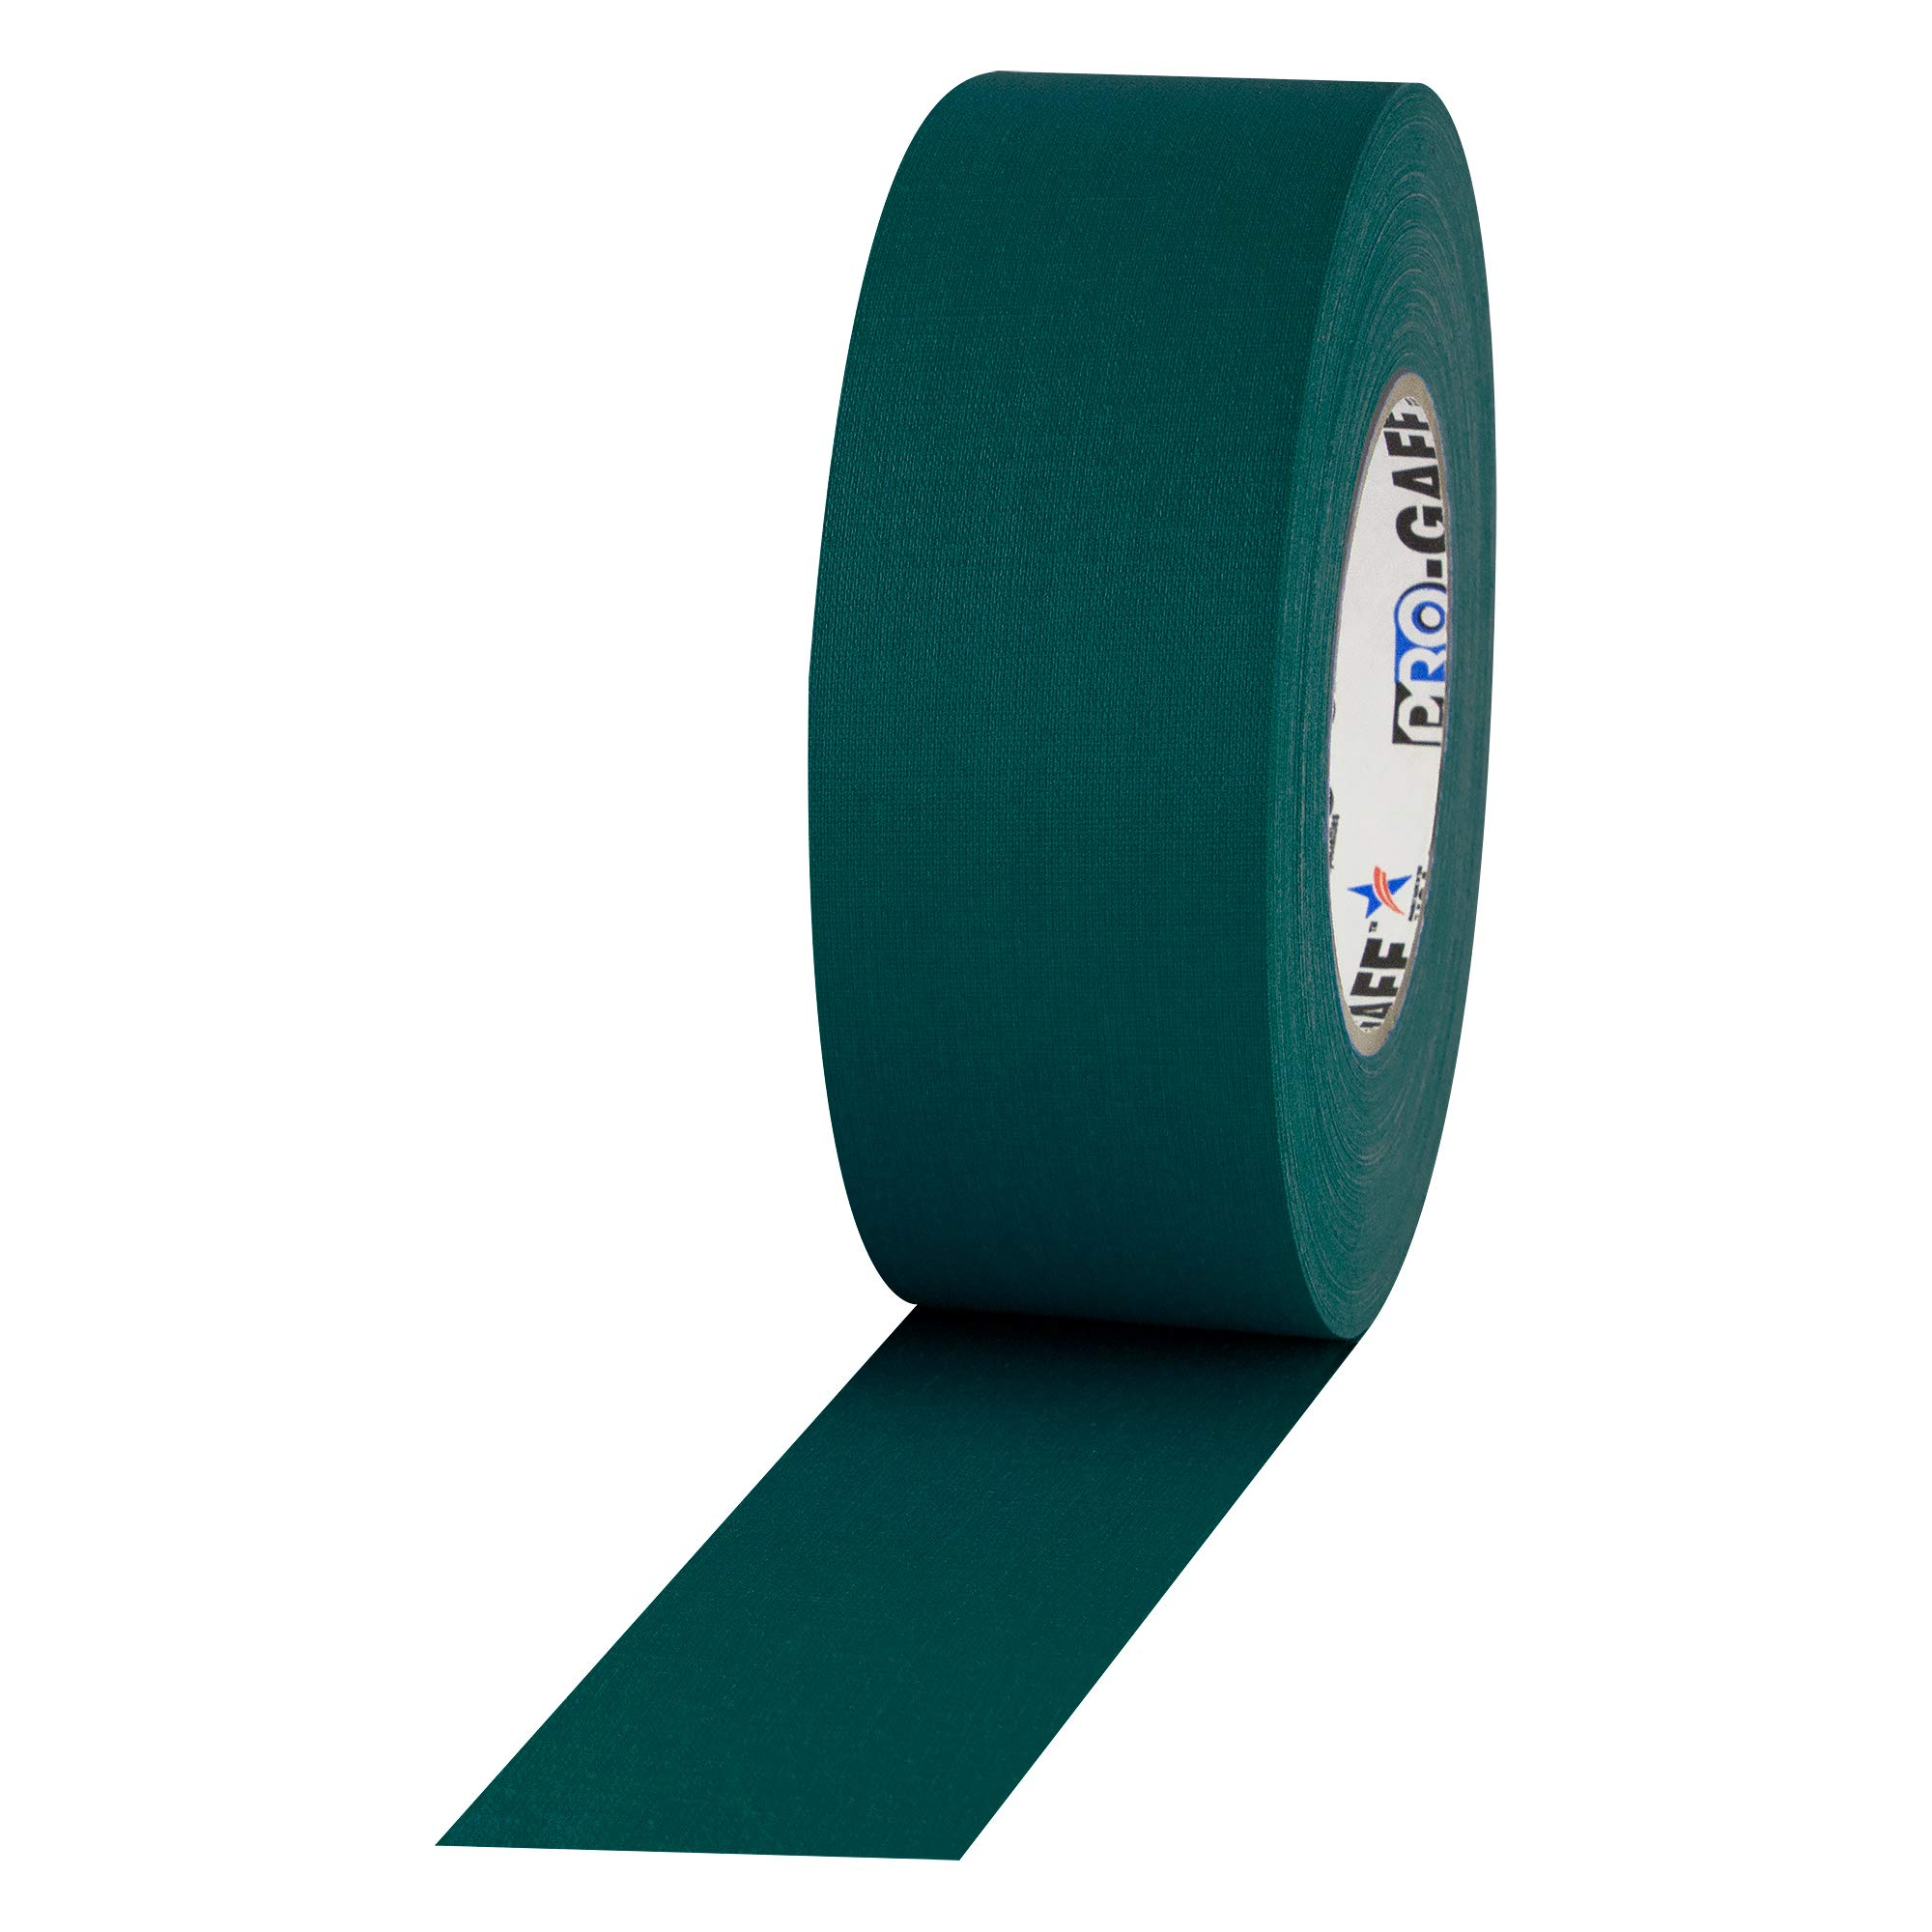 """ProTapes Pro Gaff Premium Matte Cloth Gaffer's Tape With Rubber Adhesive, 11 mils Thick, 55 yds Length, 2"""" Width, Teal (Pack of 1)"""